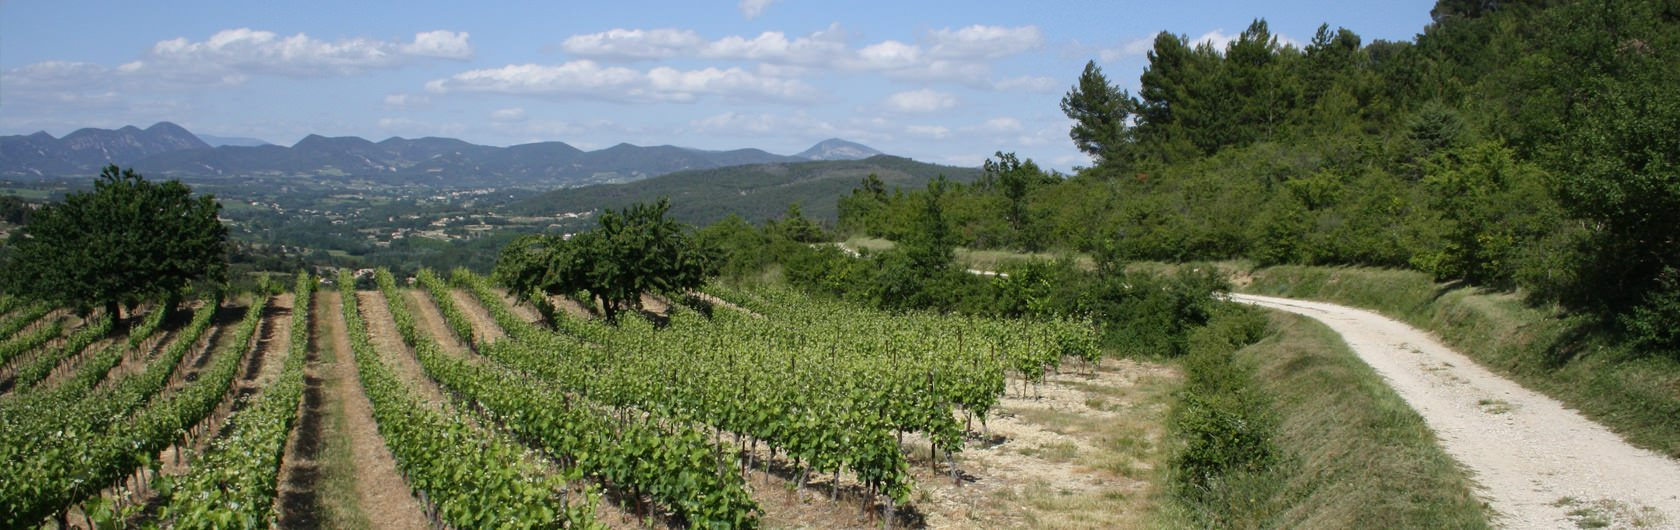 4.  Elsewhere.... Provence, Avignon and the Montmirial mountains